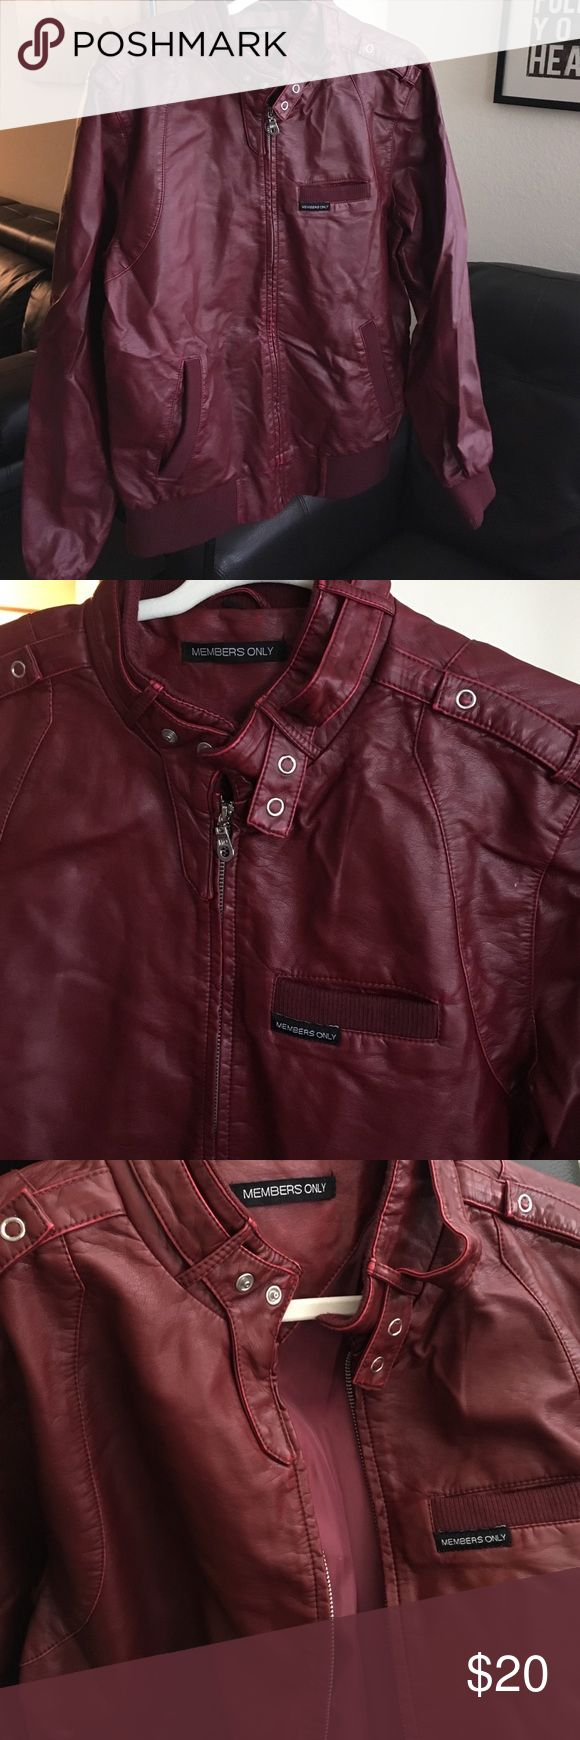 Men's faux leather  jacket Men's faux leather burgundy jacket . Three outer pockets, one inner pocket. Members Only Jackets & Coats Bomber & Varsity